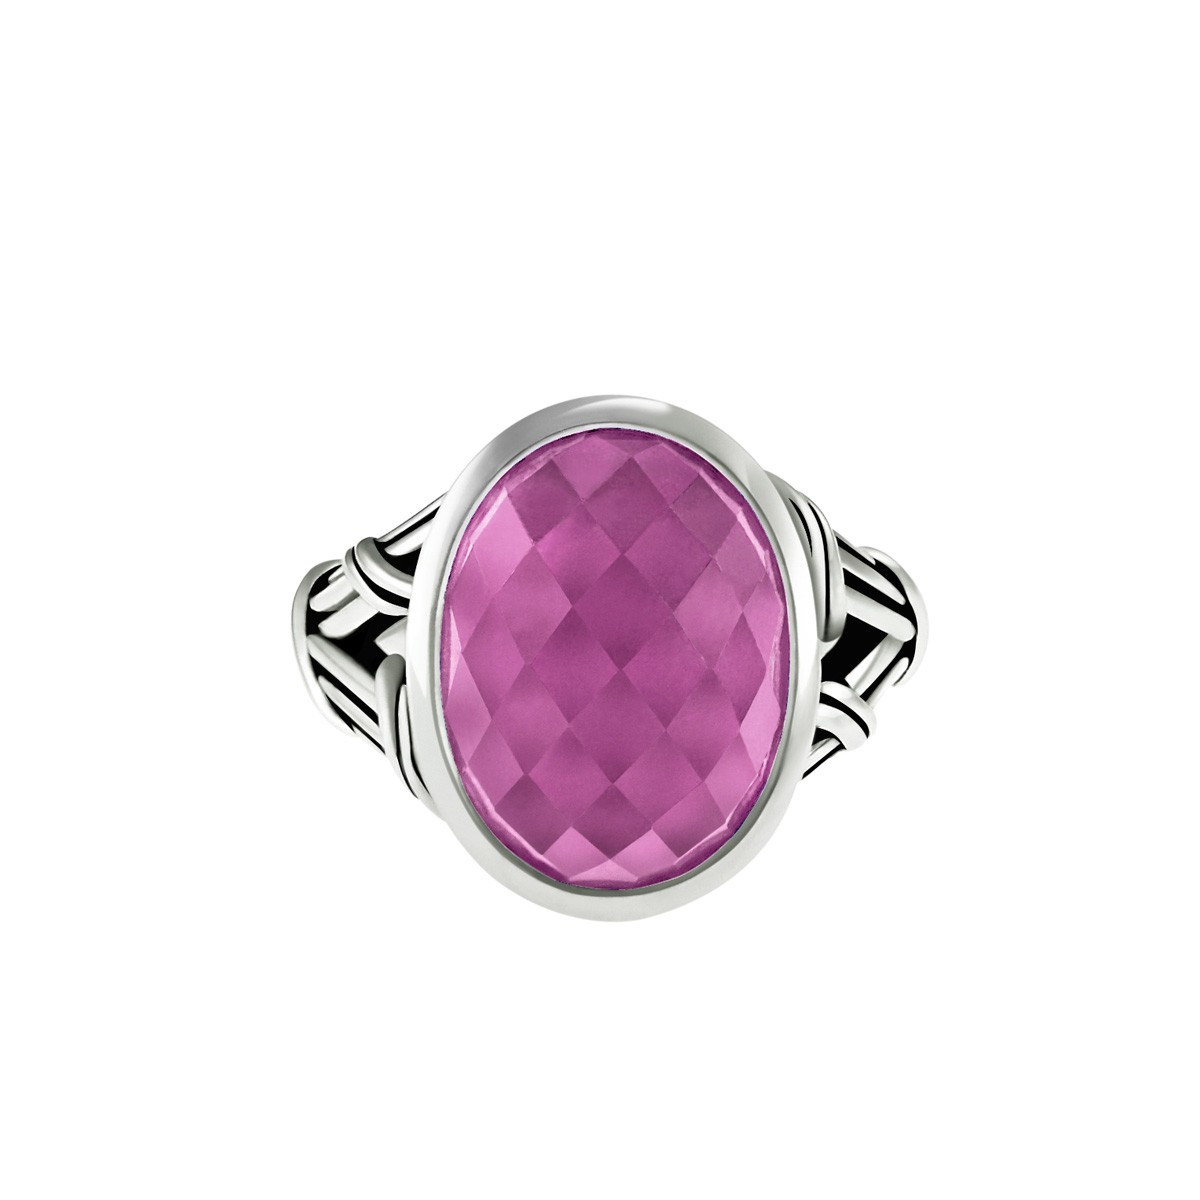 Fantasies Ruby Doublet Cocktail Ring with rock crystal in sterling silver